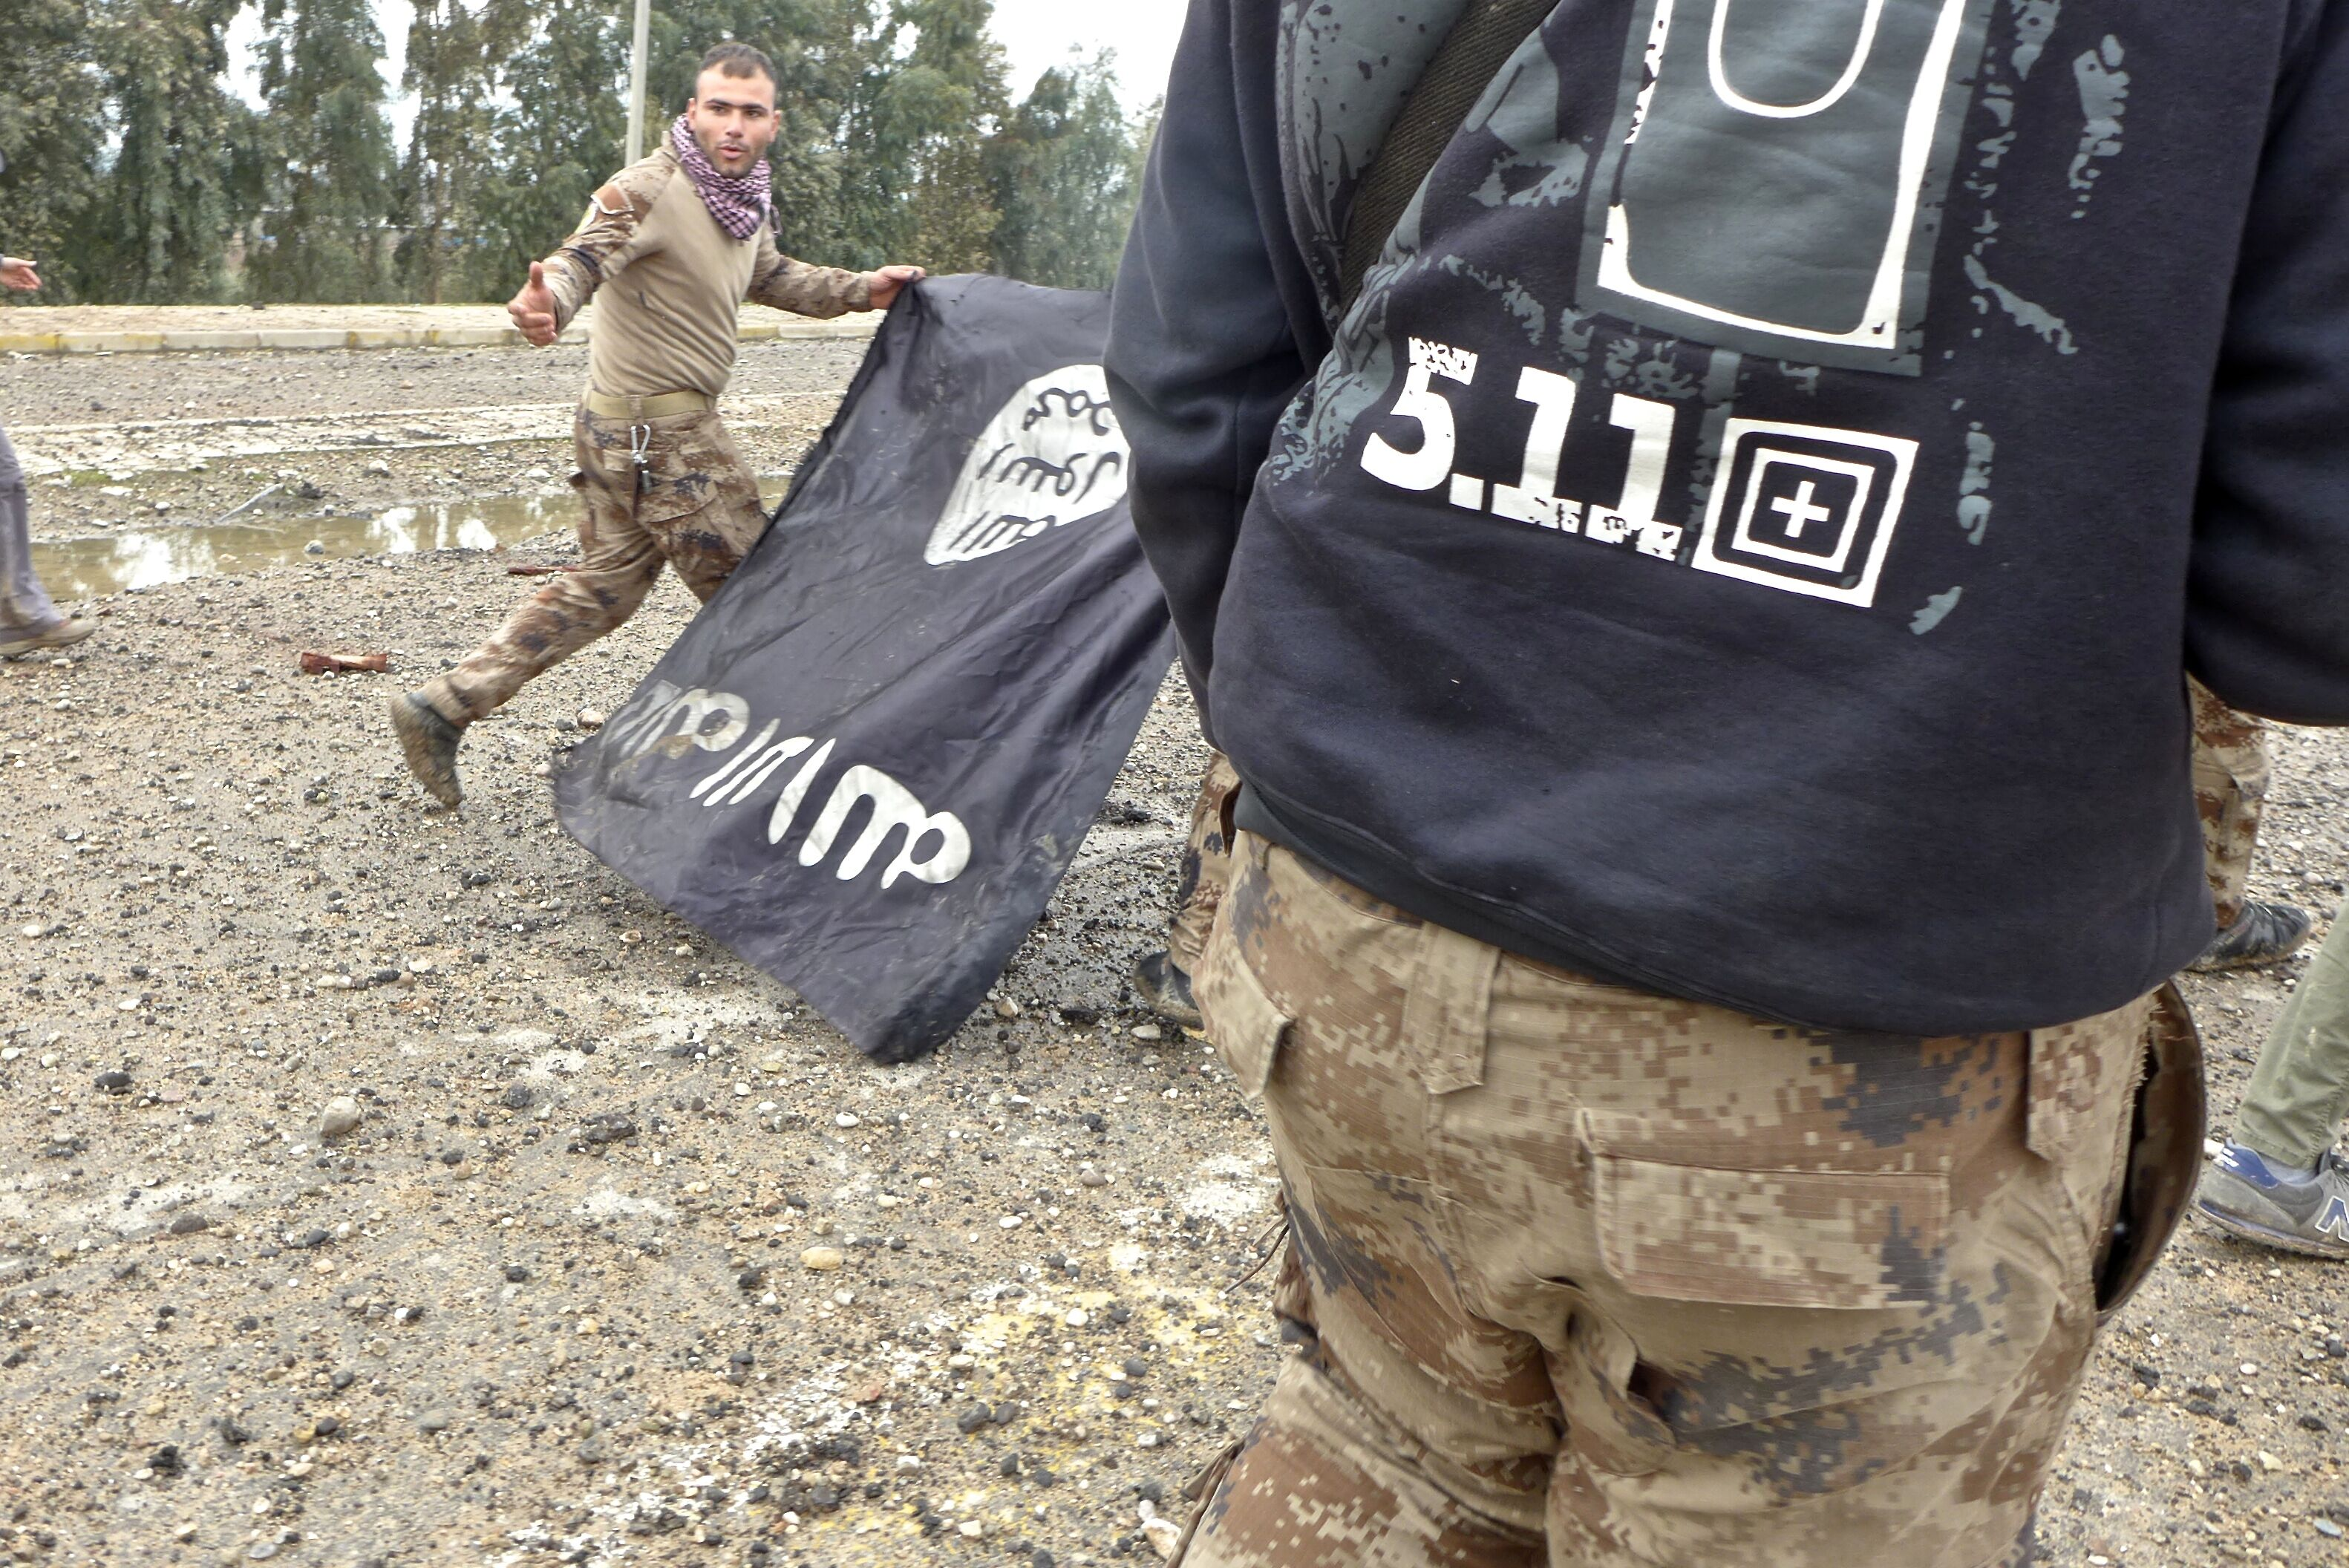 Iraqi Special Forces pull down an IS flag in Mosul in 2017 (MEE/TomWestcott)